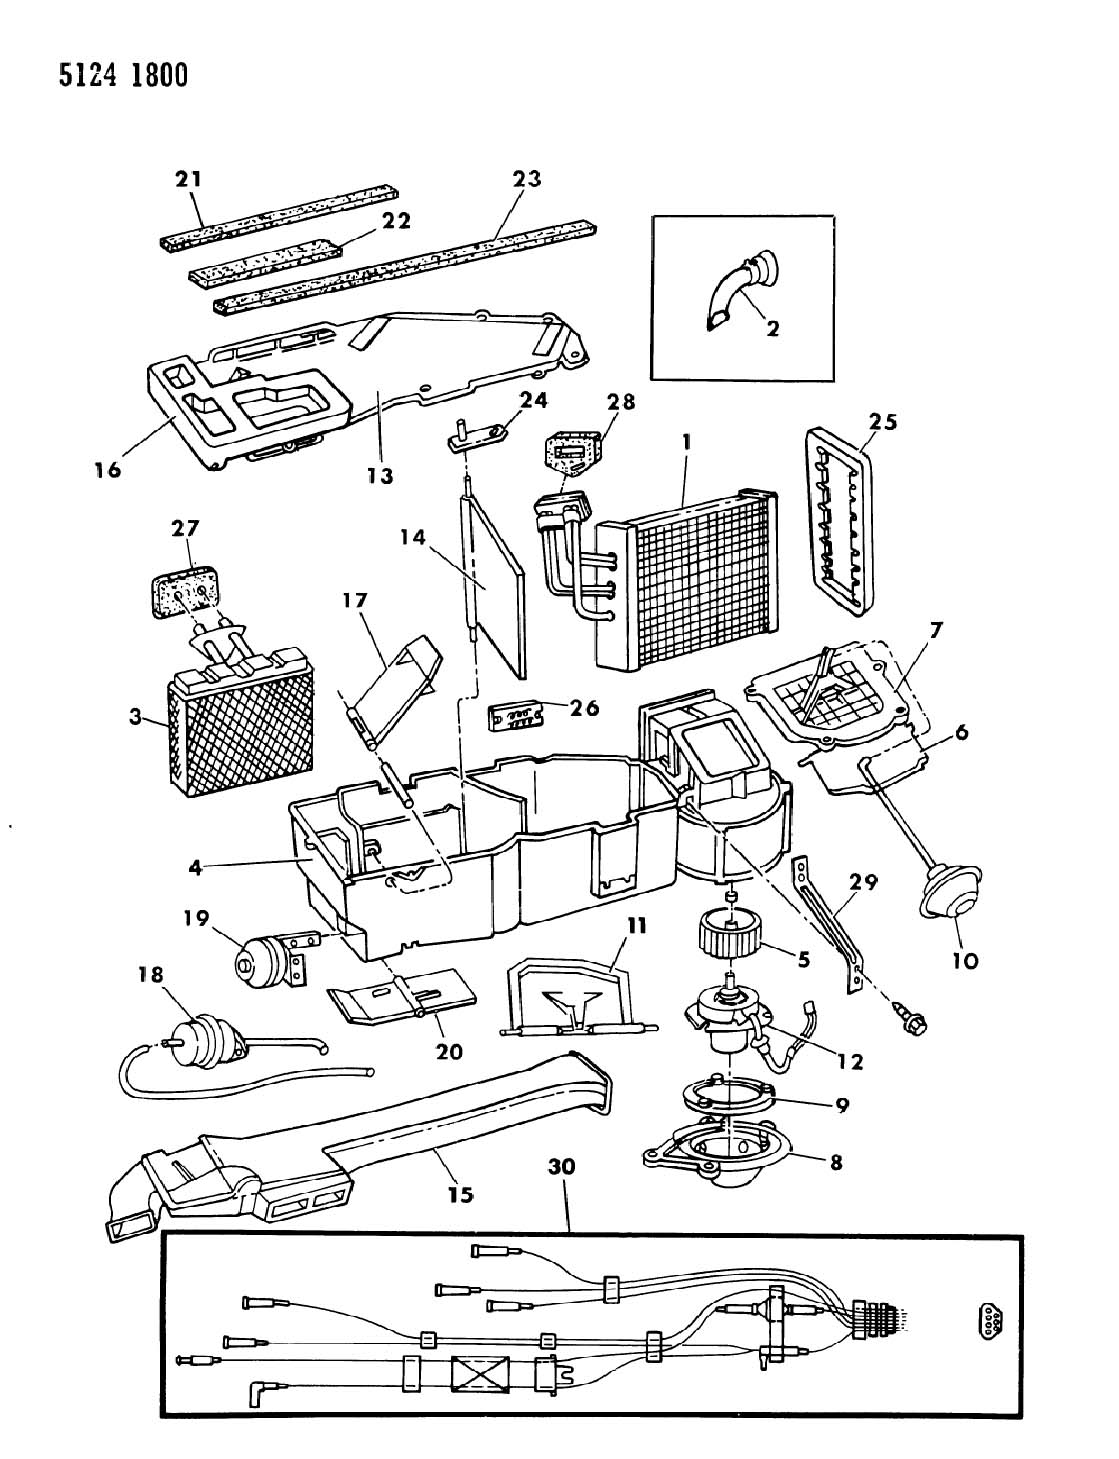 AIR CONDITIONER AND HEATER UNIT H,K